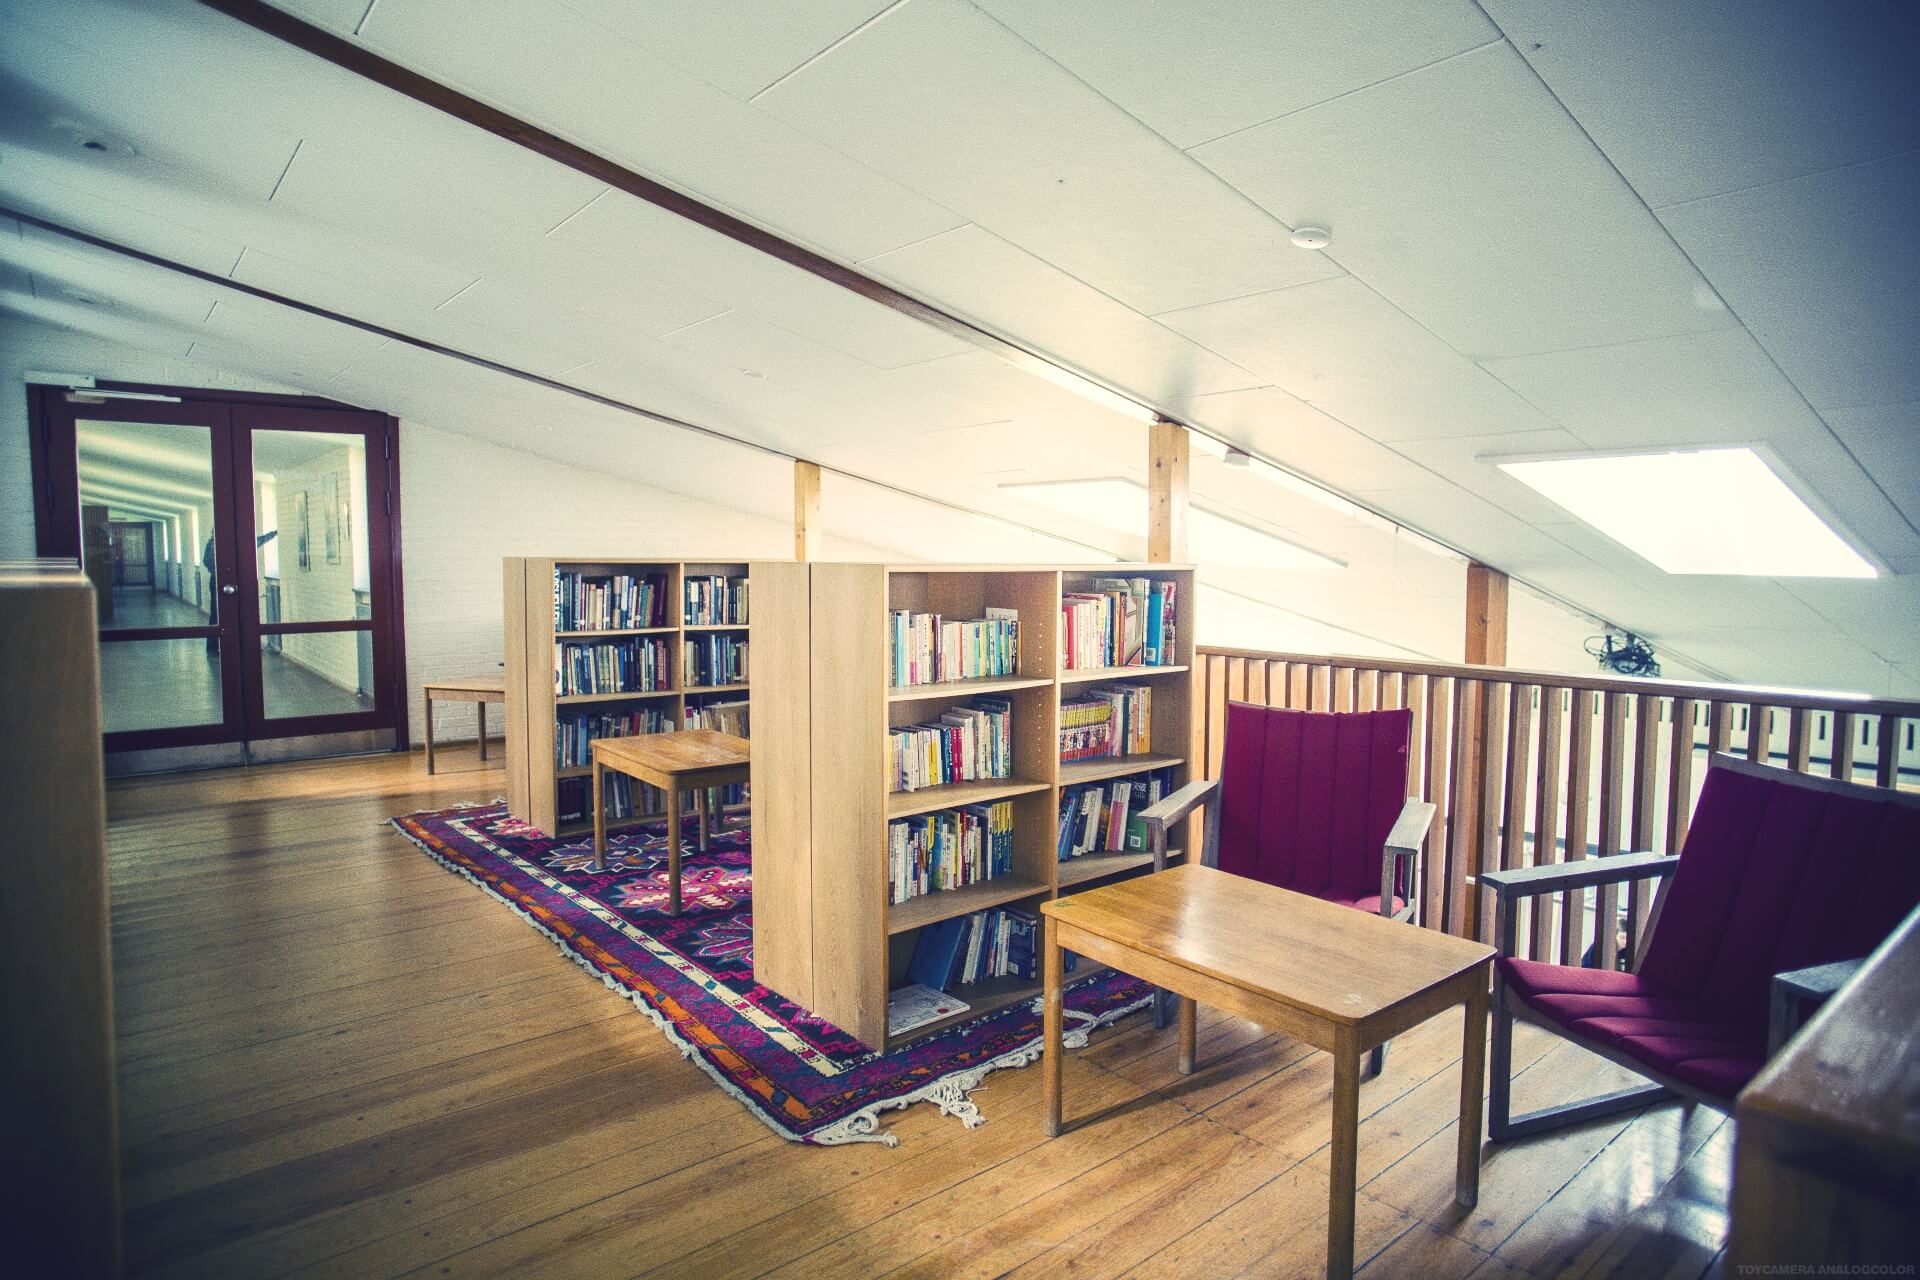 folk high school mini library at International People's College in Denmark